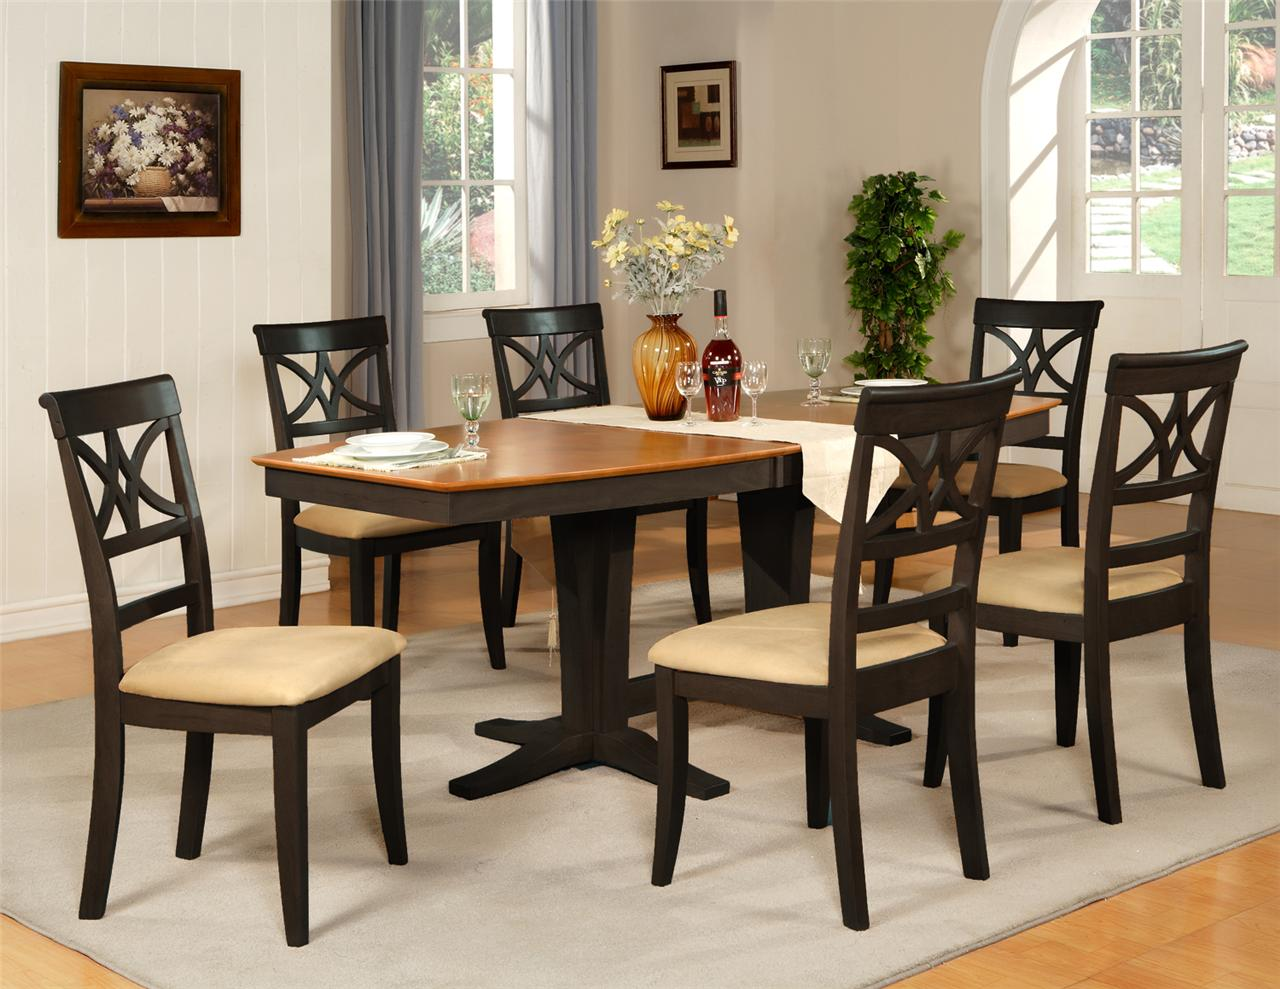 Dining room table with chairs 2017 grasscloth wallpaper for Dining room table with 6 chairs